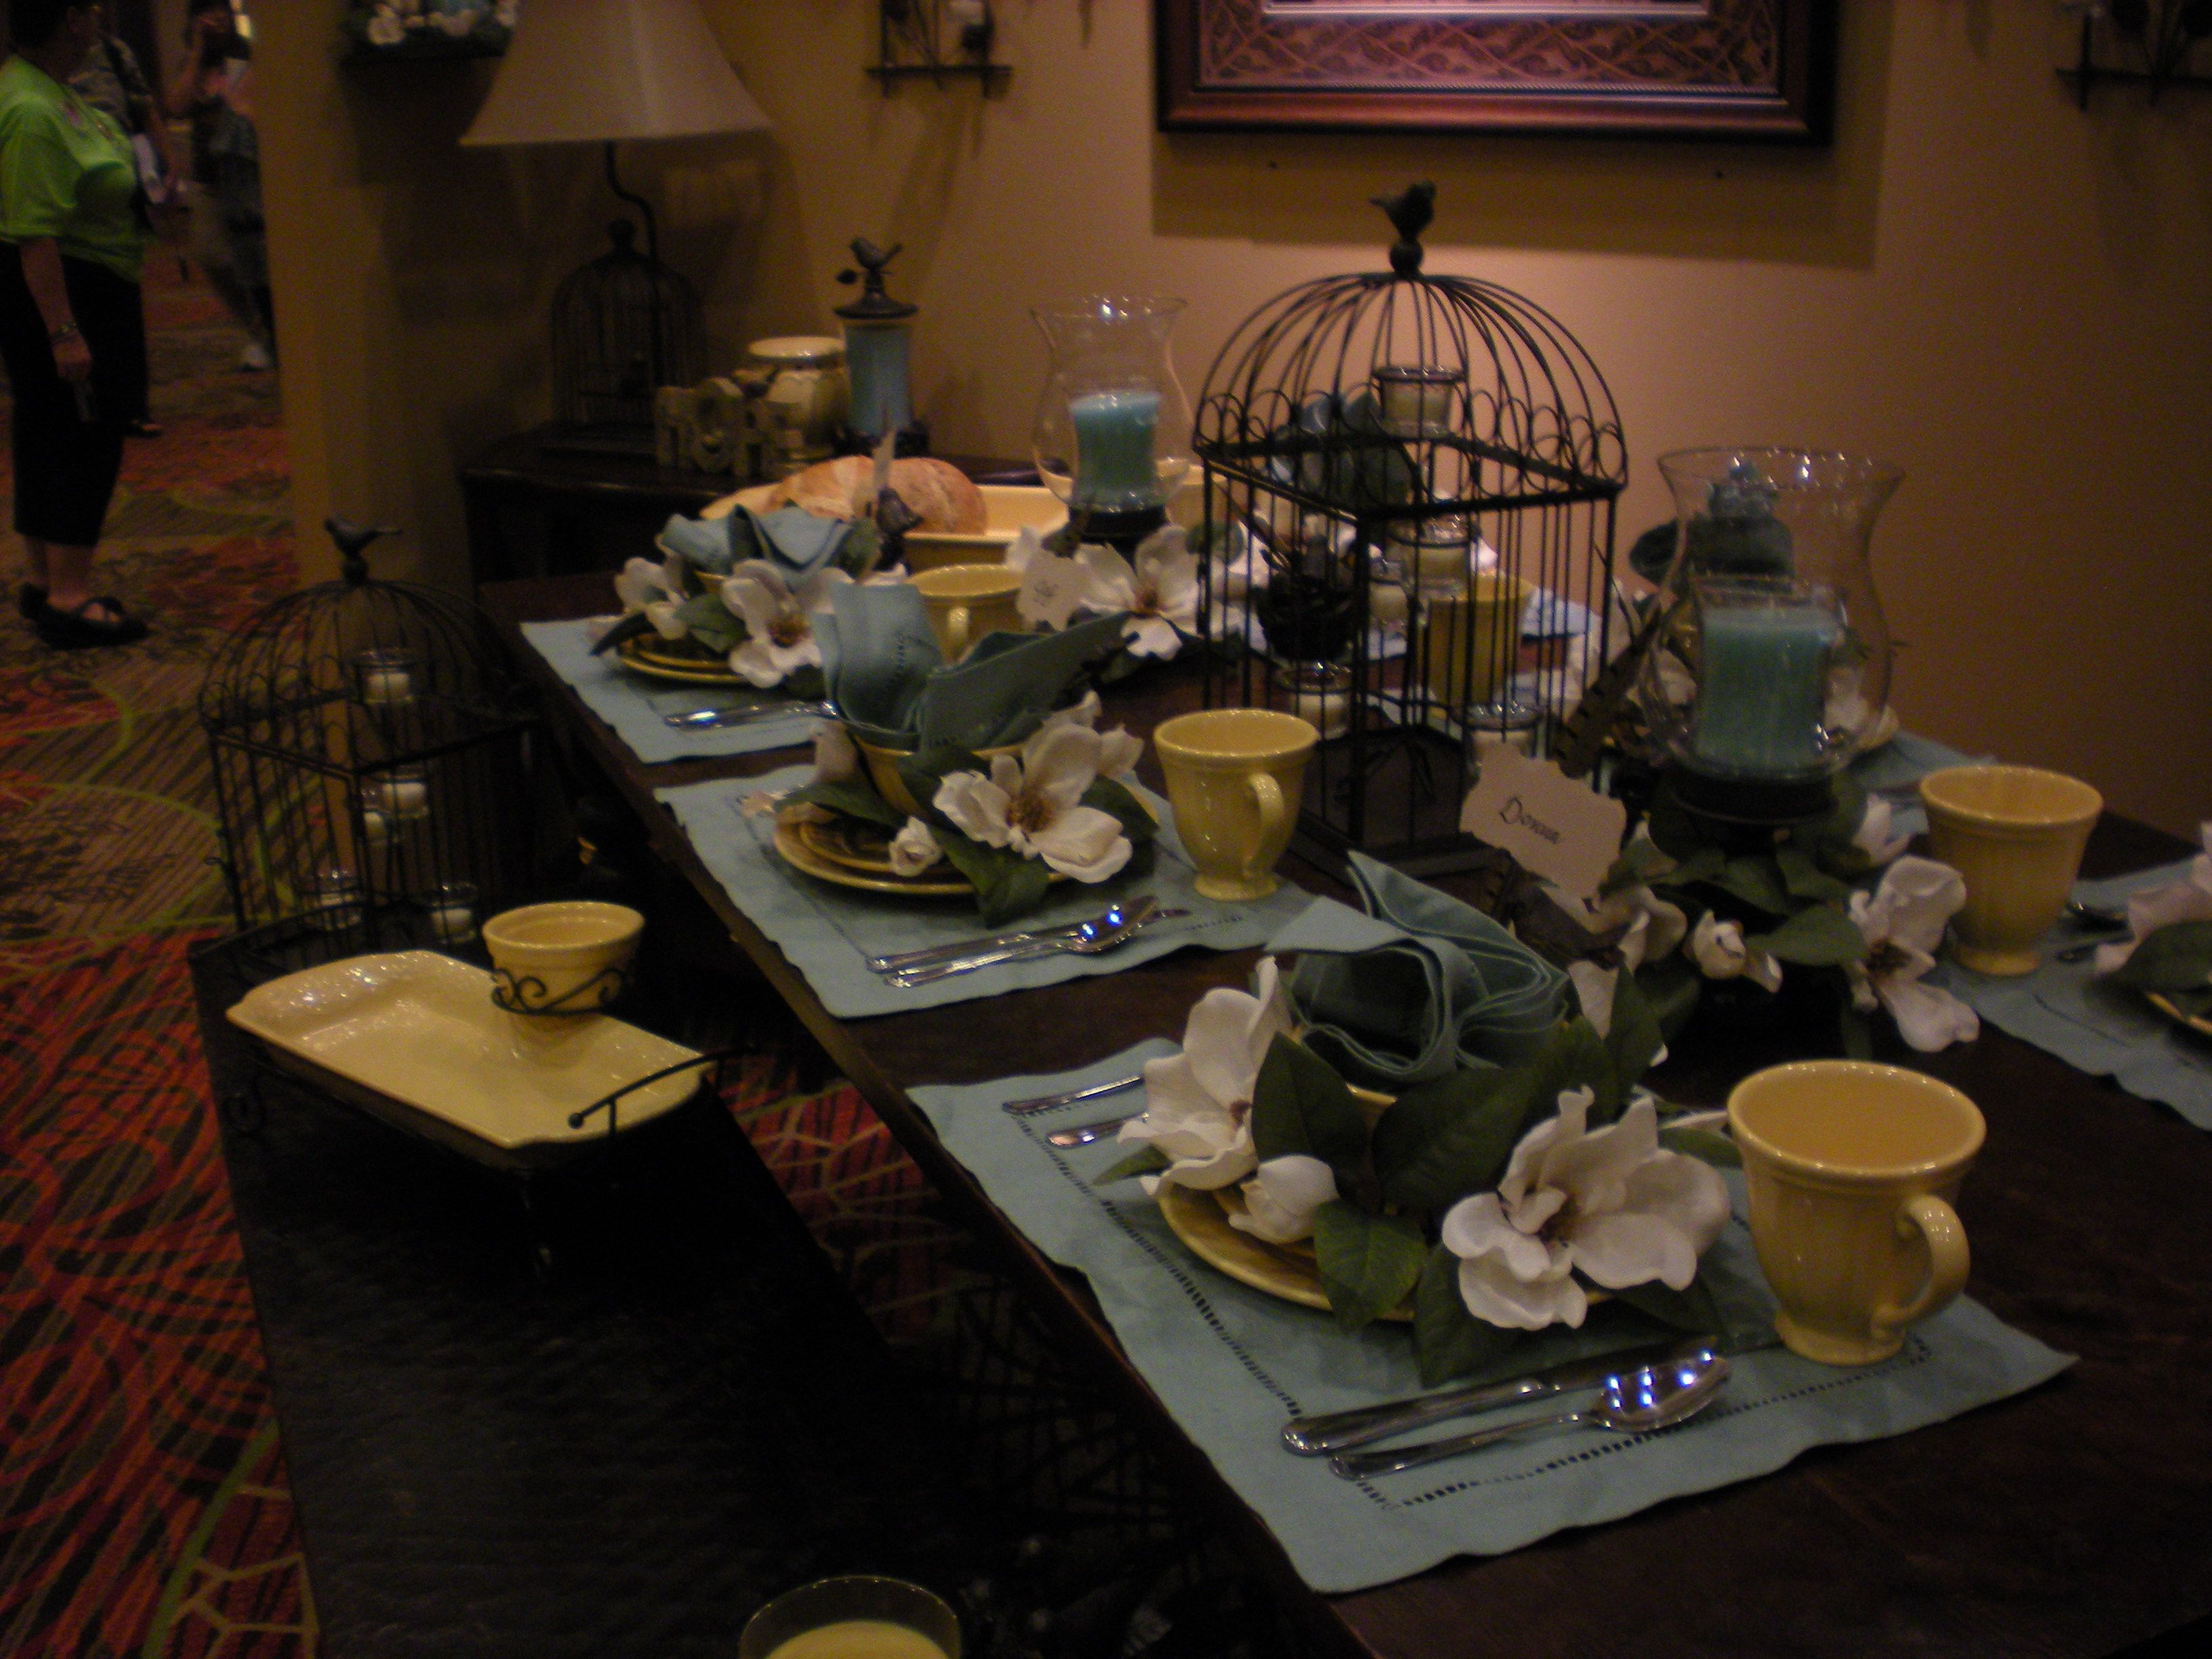 Soft Yellow Somerset Stoneware Sets A Pretty Table From Celebrating Home /sites/CricketW